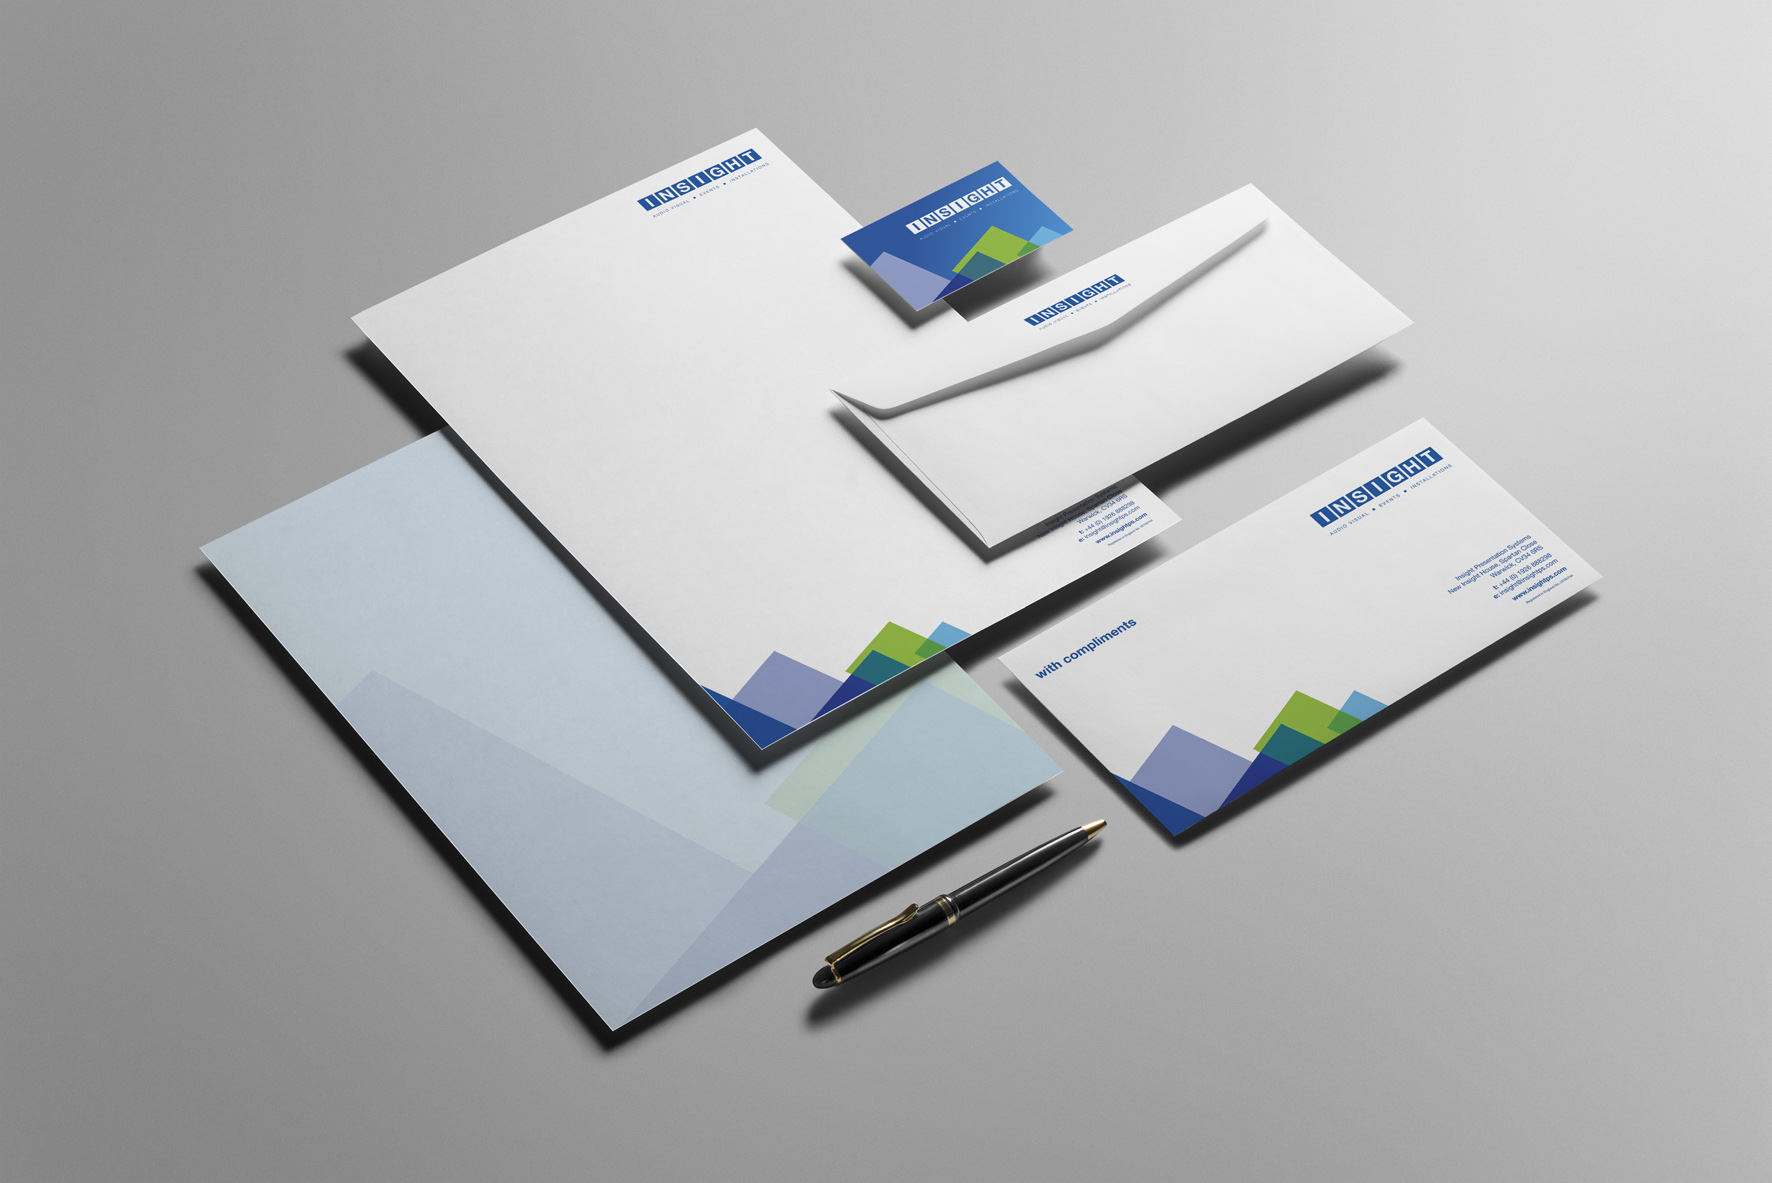 Corporate stationery design by Create Onsight for our client Insight.